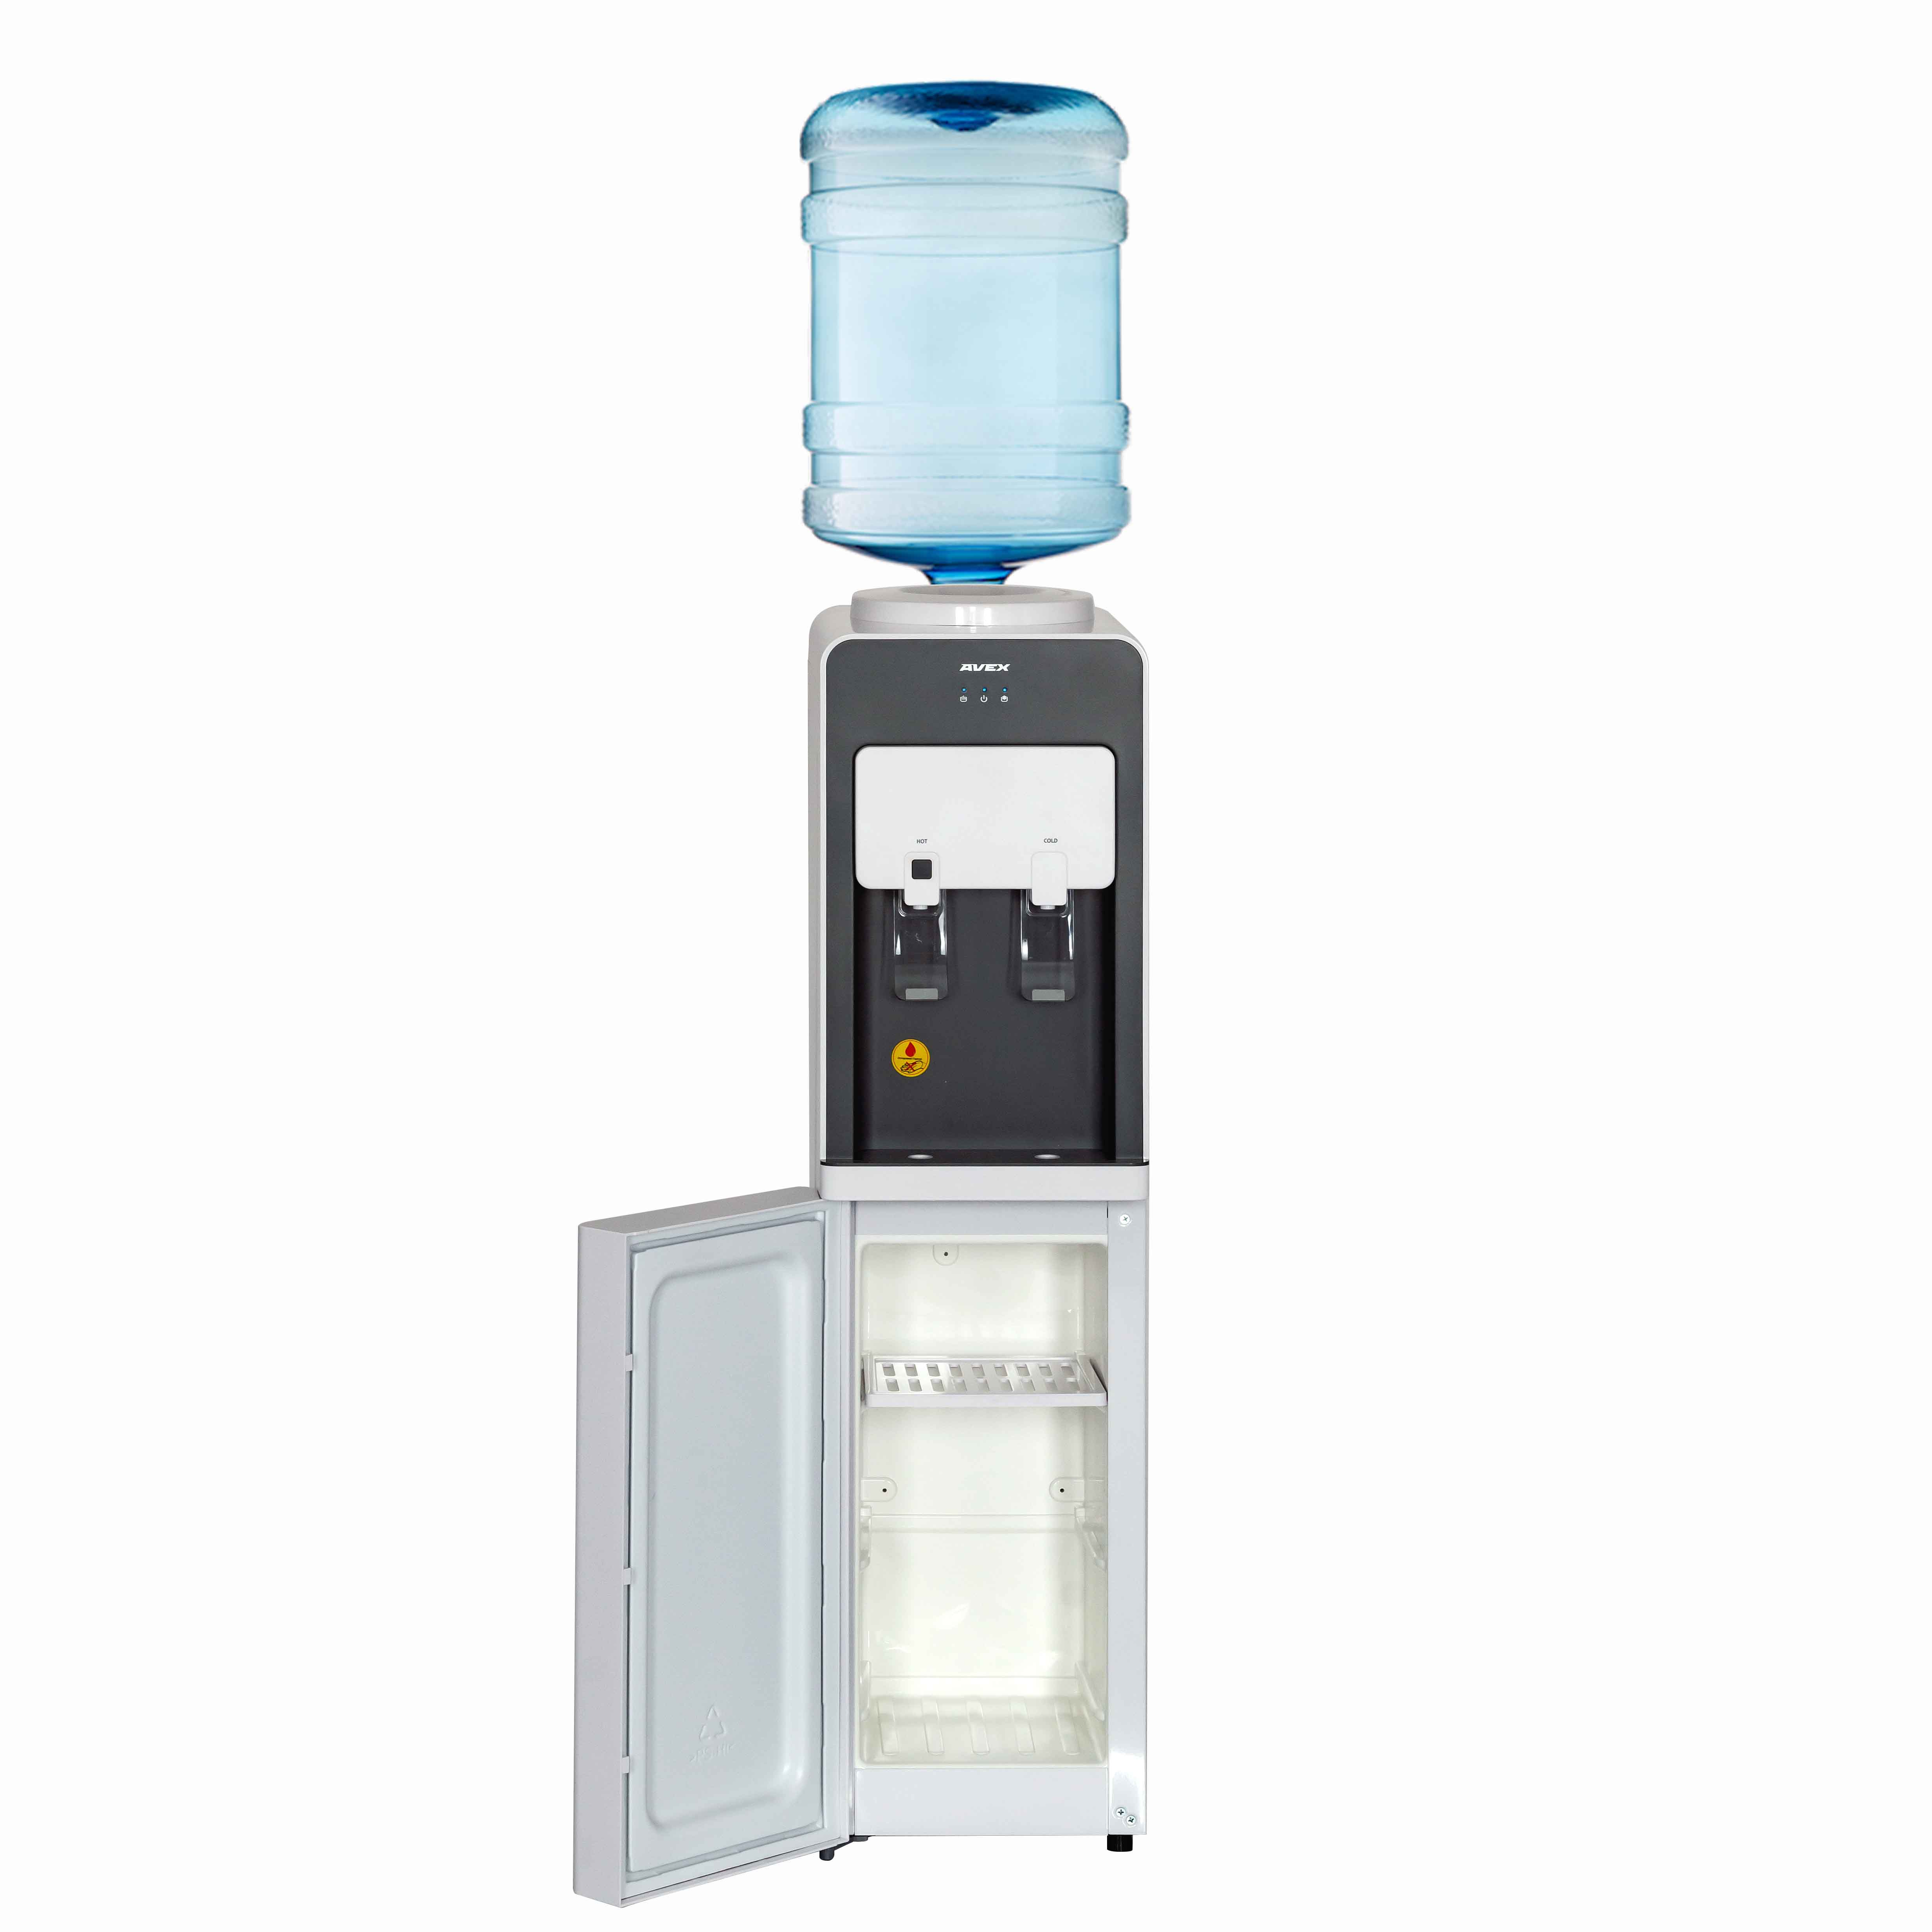 Water Dispenser with electronic cooling AVEX F-63W upright water dispenser hot water dispenser to warm mini type household refrigeration